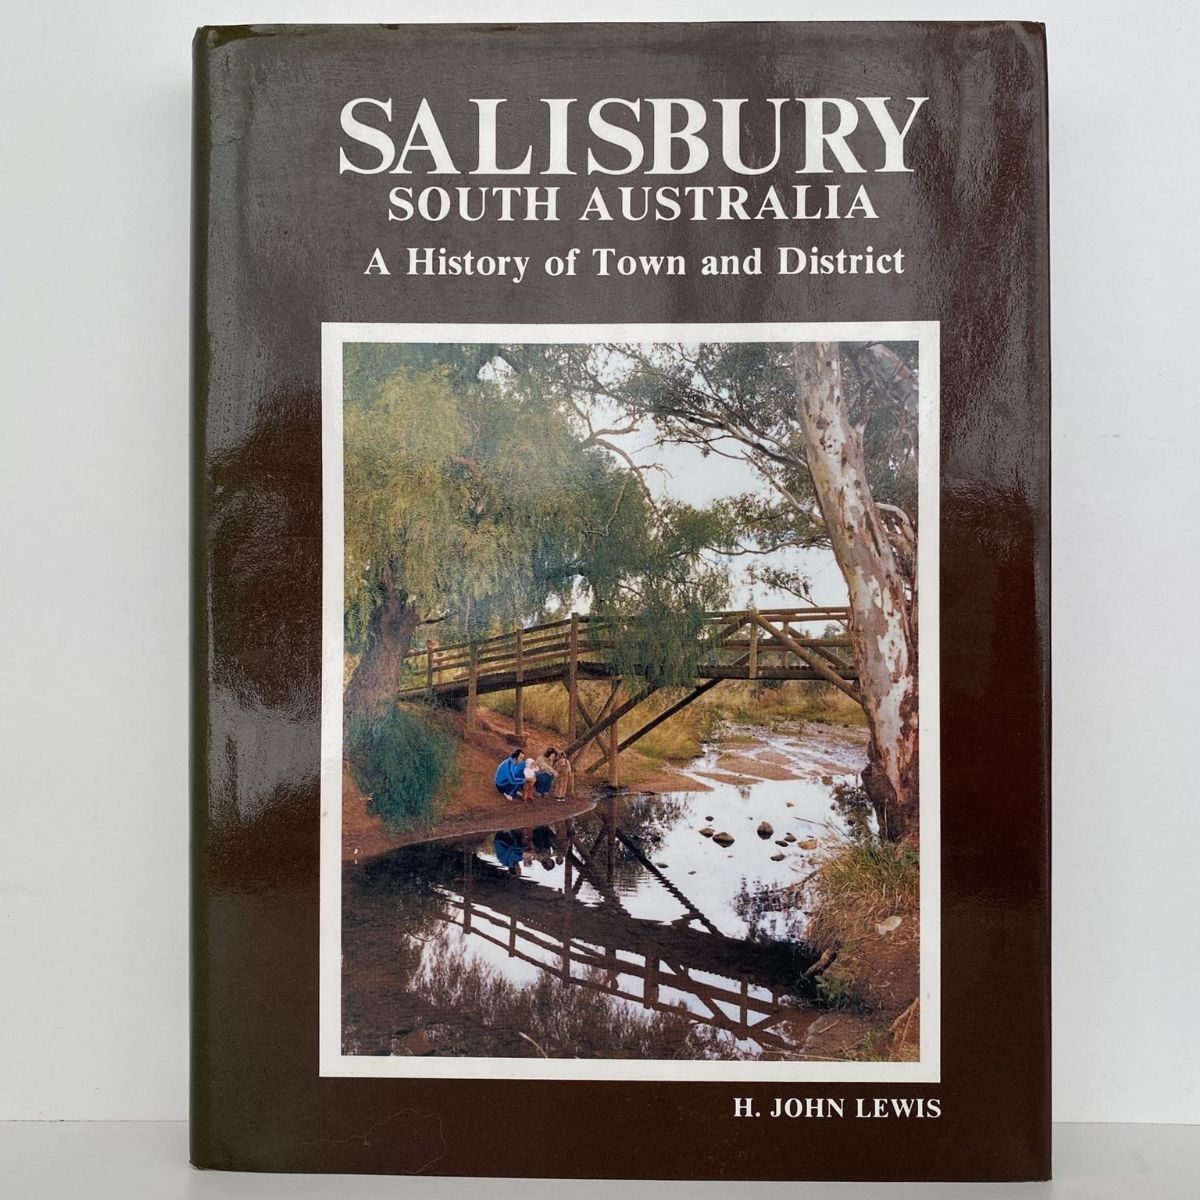 Salisbury South Australia : A History of Town and District